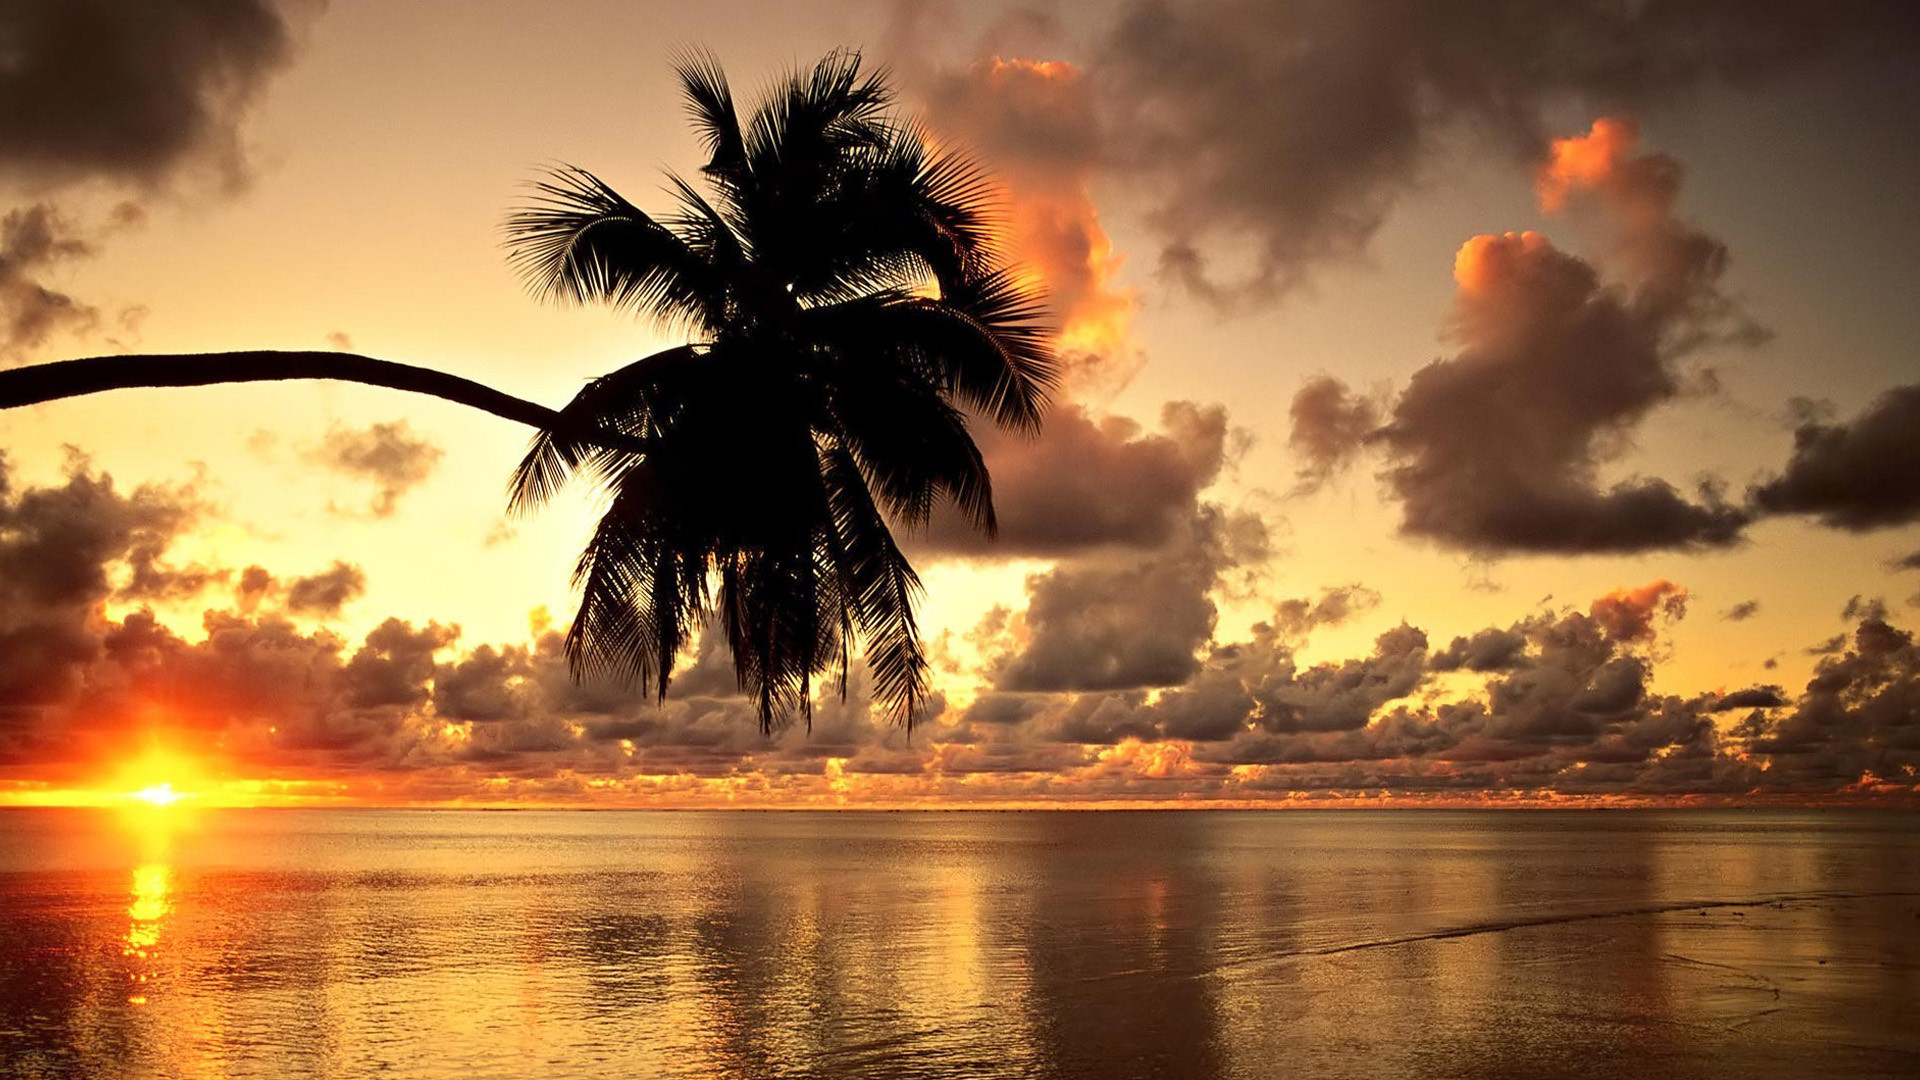 1920x1080 Tropical sunset beach beautiful scenery Wallpapers, Beach Pictures .